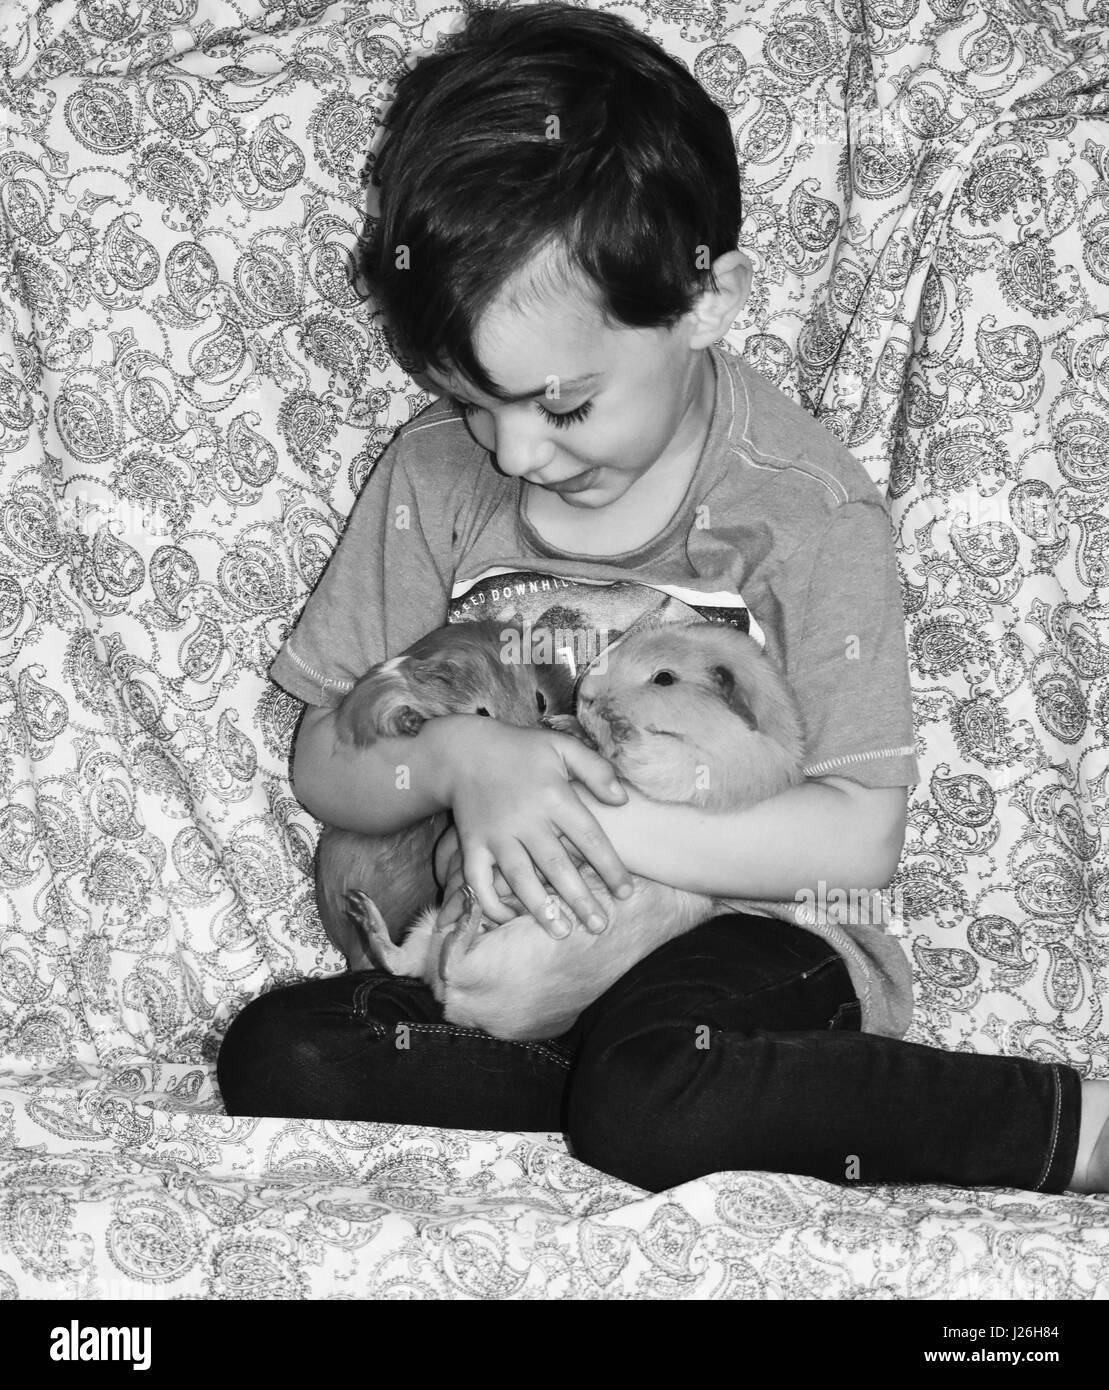 Guinea pigs with a little boy holding them on a paisley blue background - Stock Image